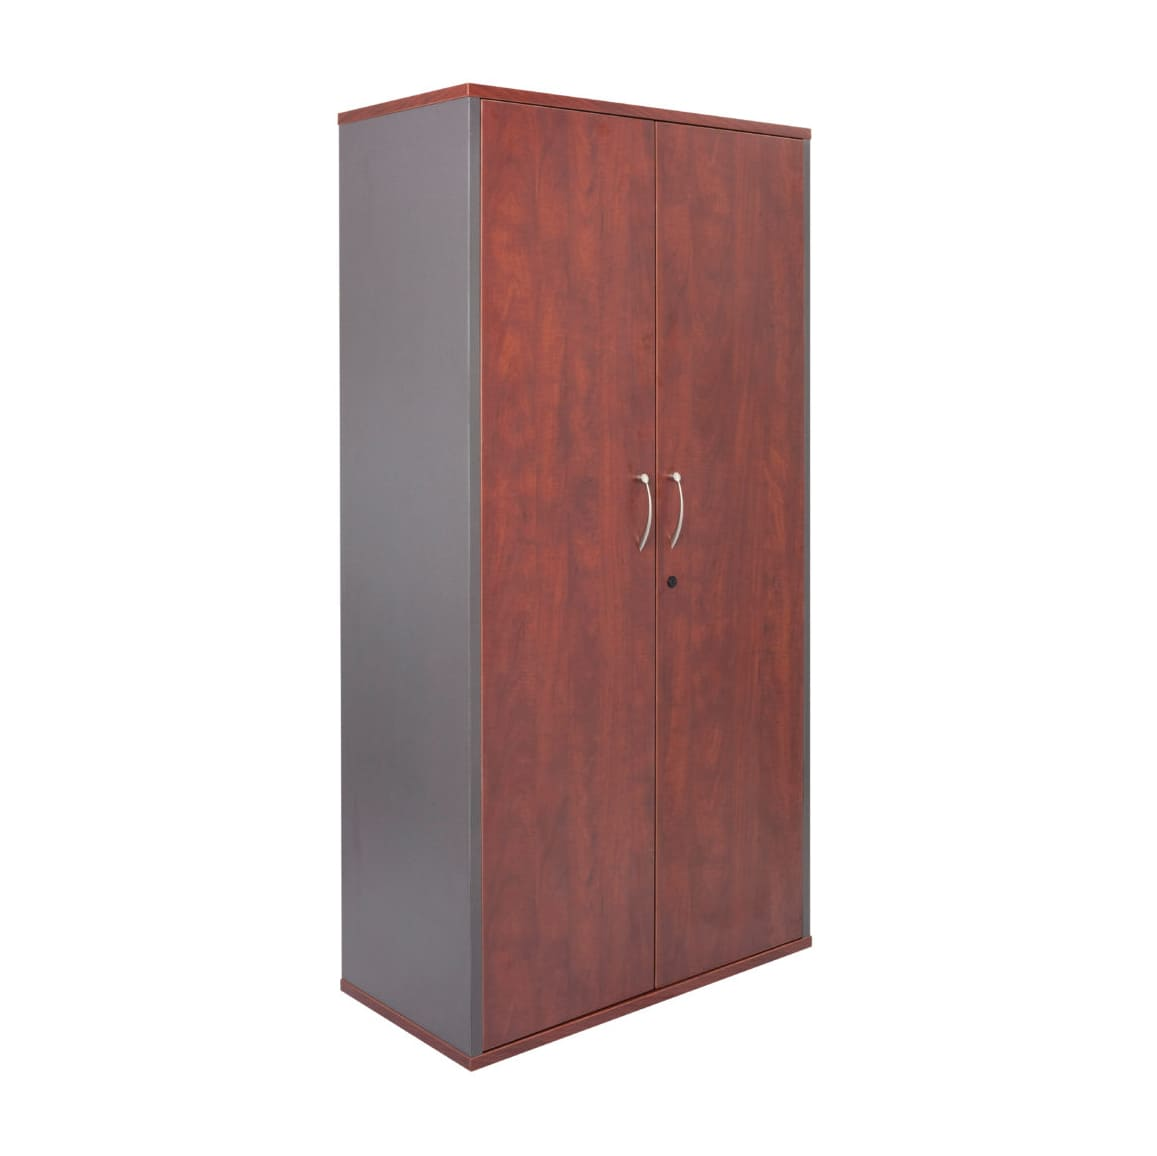 Buy Cupboard Buy A Rapid Manager Lockable Cupboard Online Office